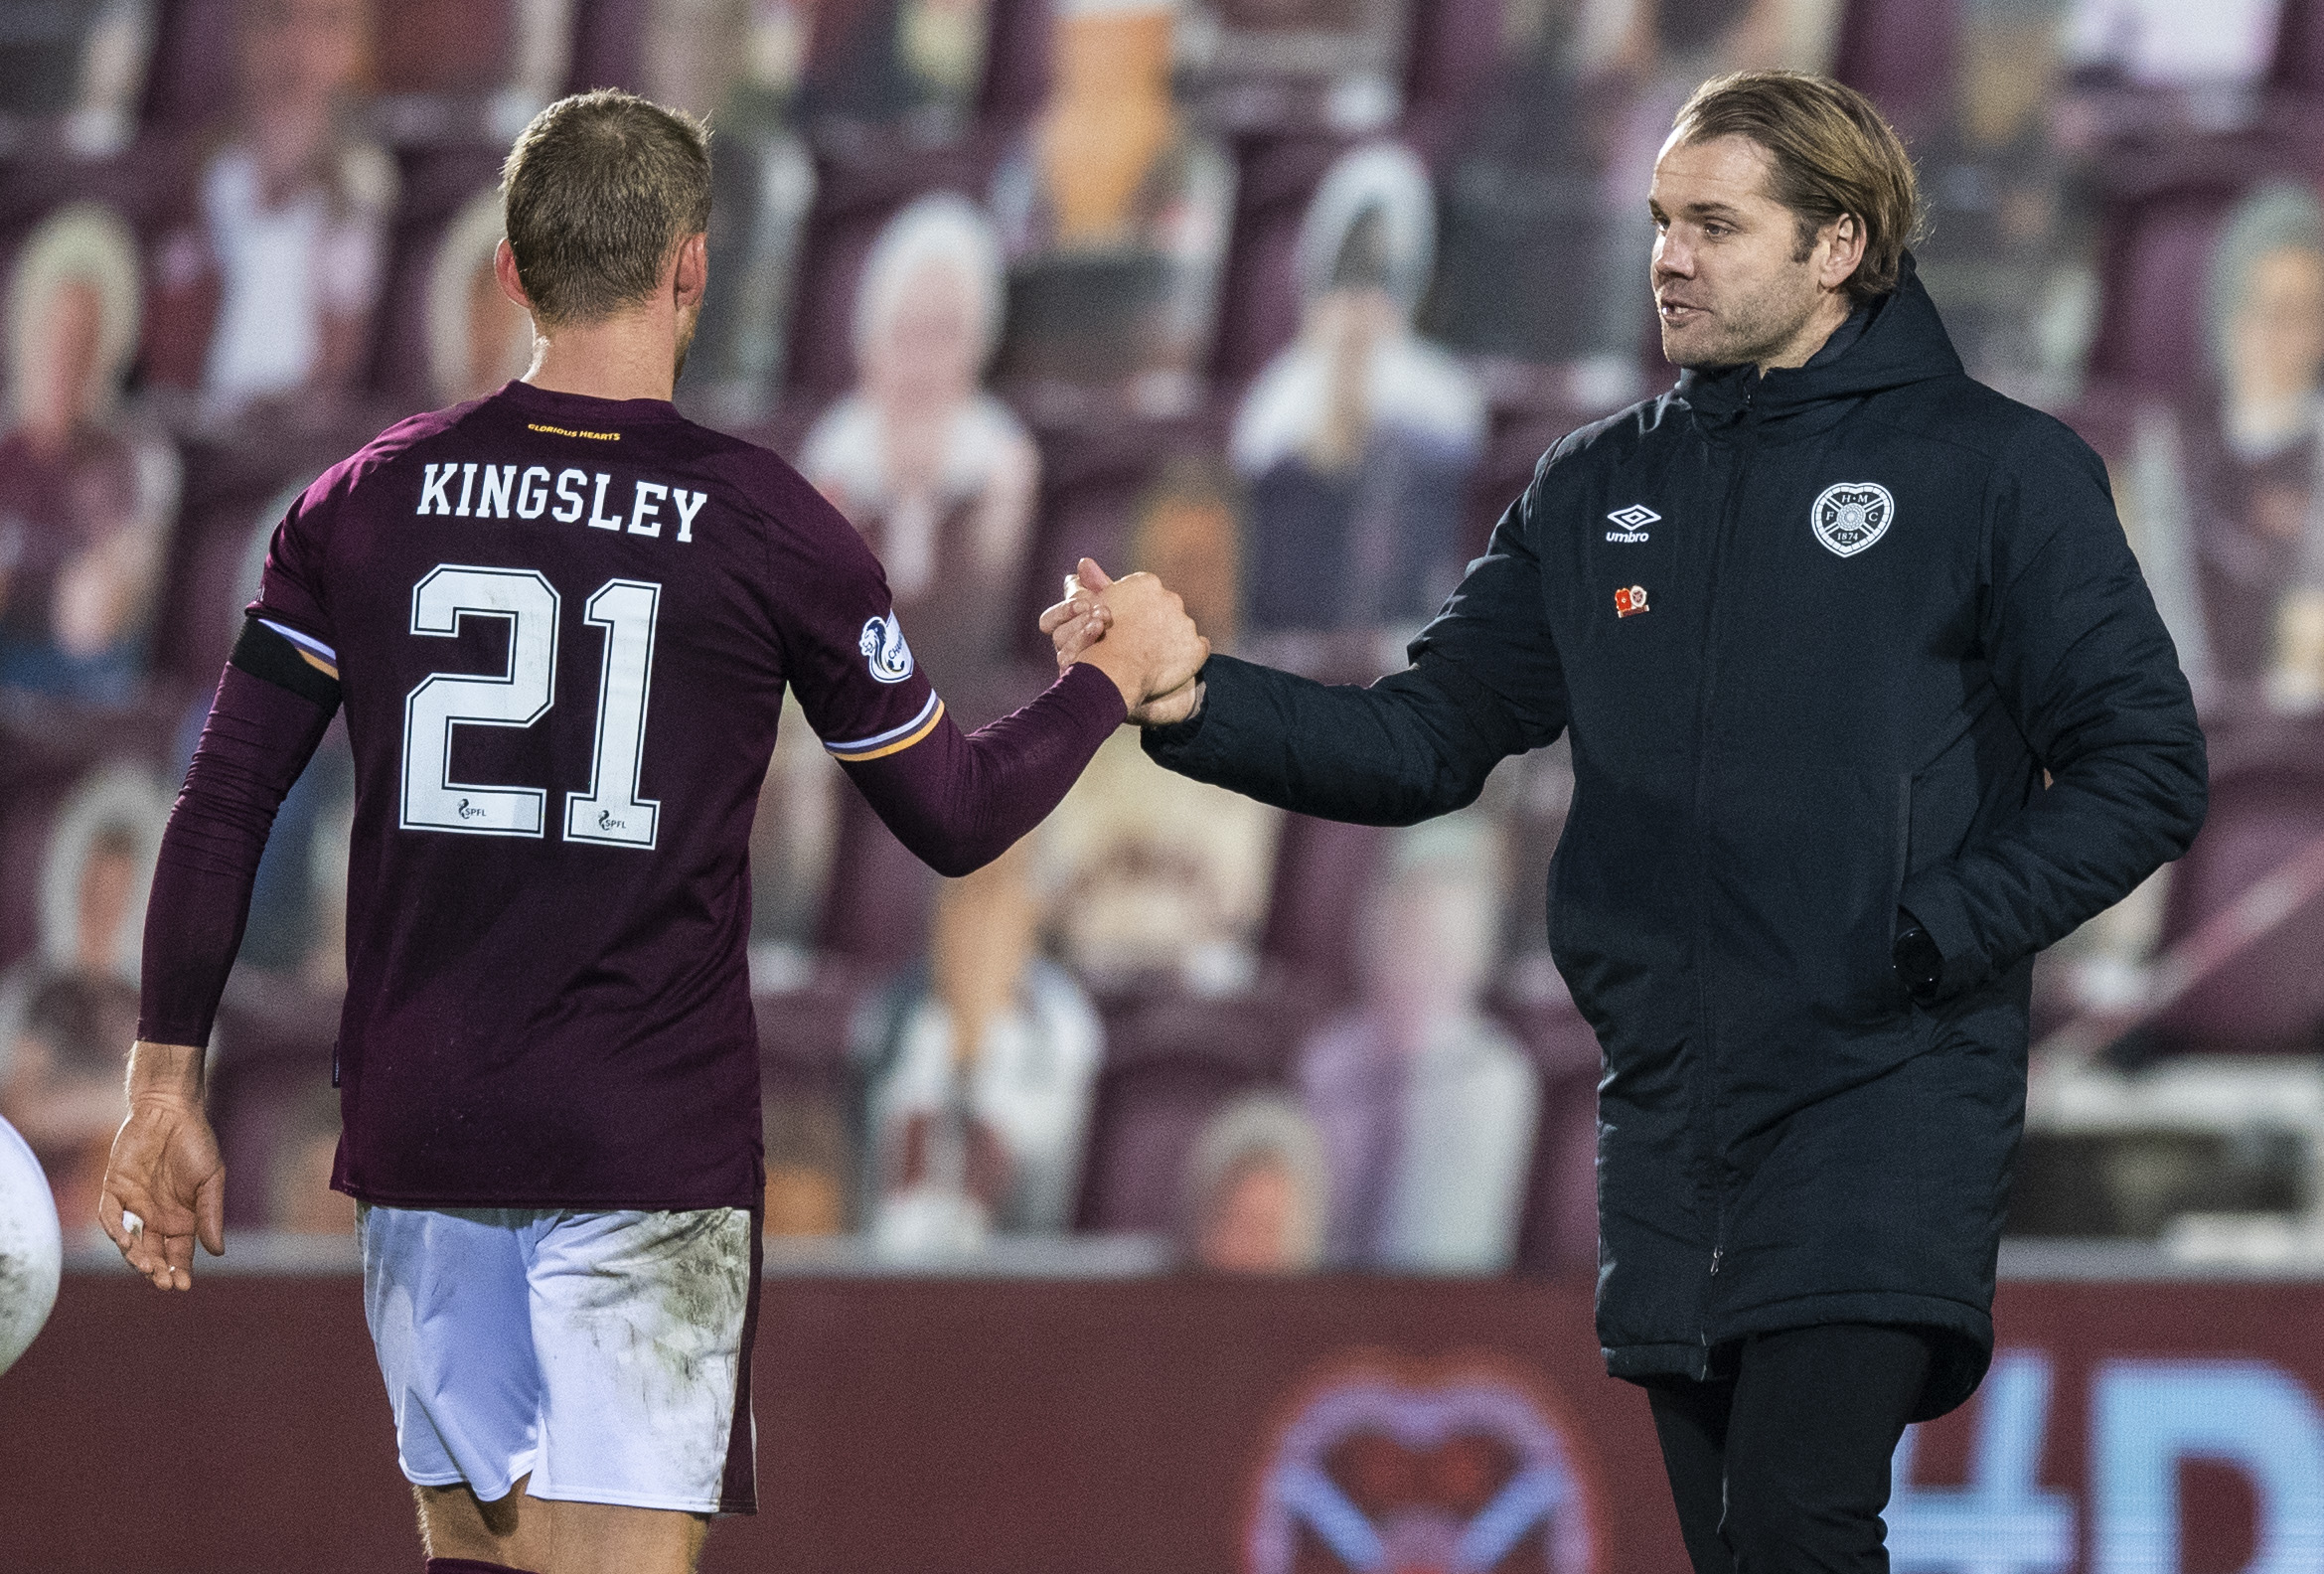 Stephen Kingsley and Robbie Neilson